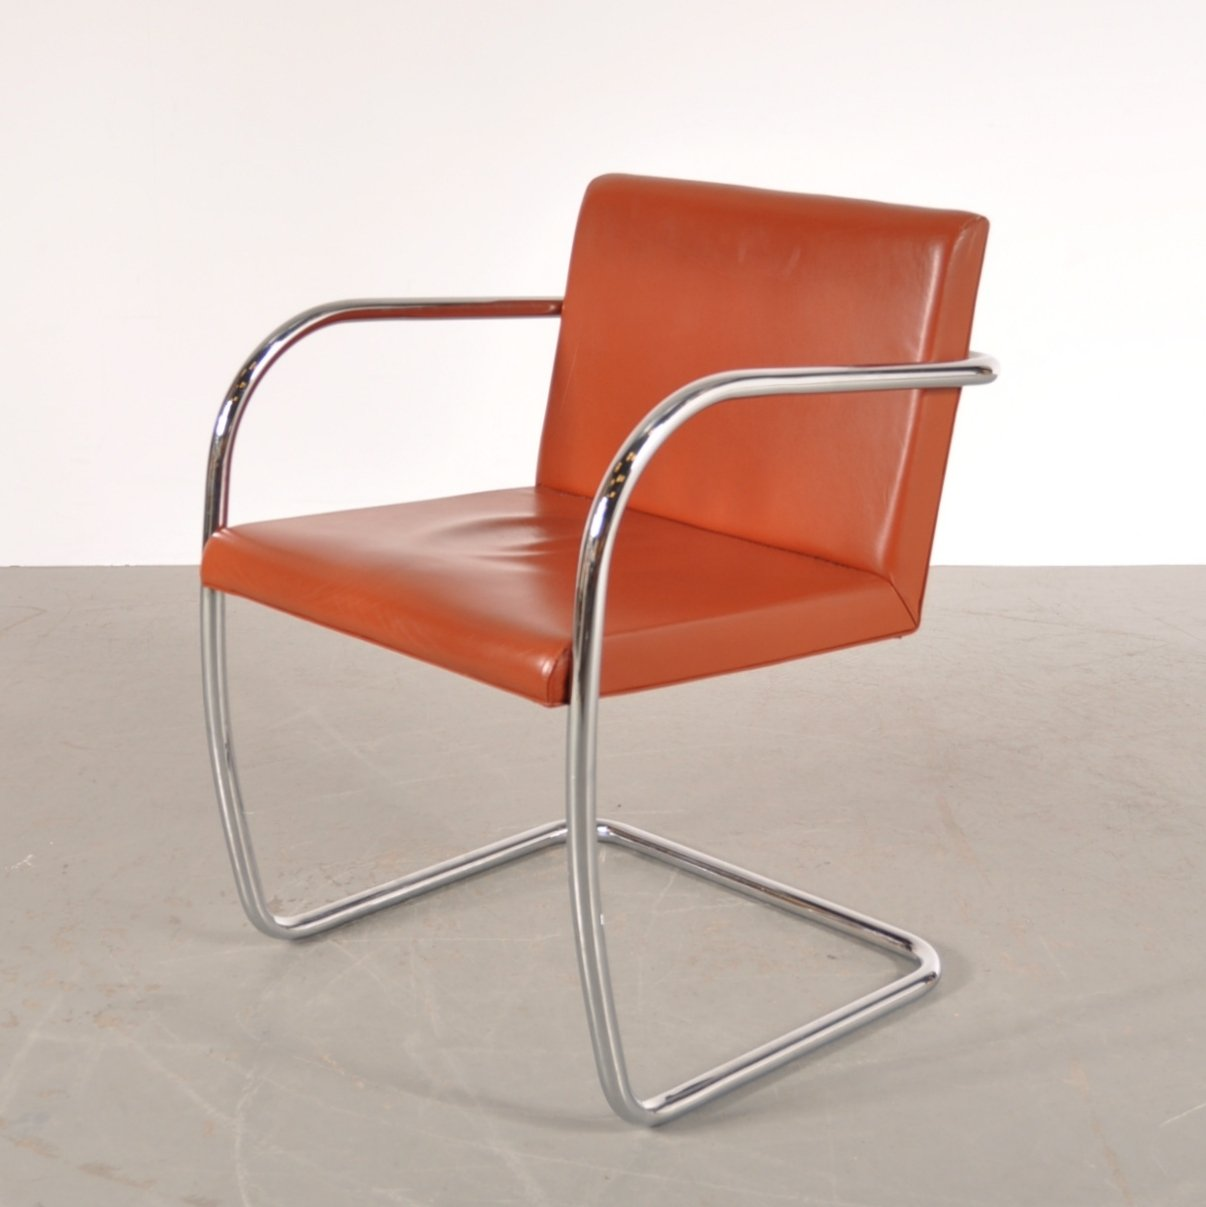 Mies van der rohe chaise tubular steel chair by ludwig for Chaise barcelona knoll prix